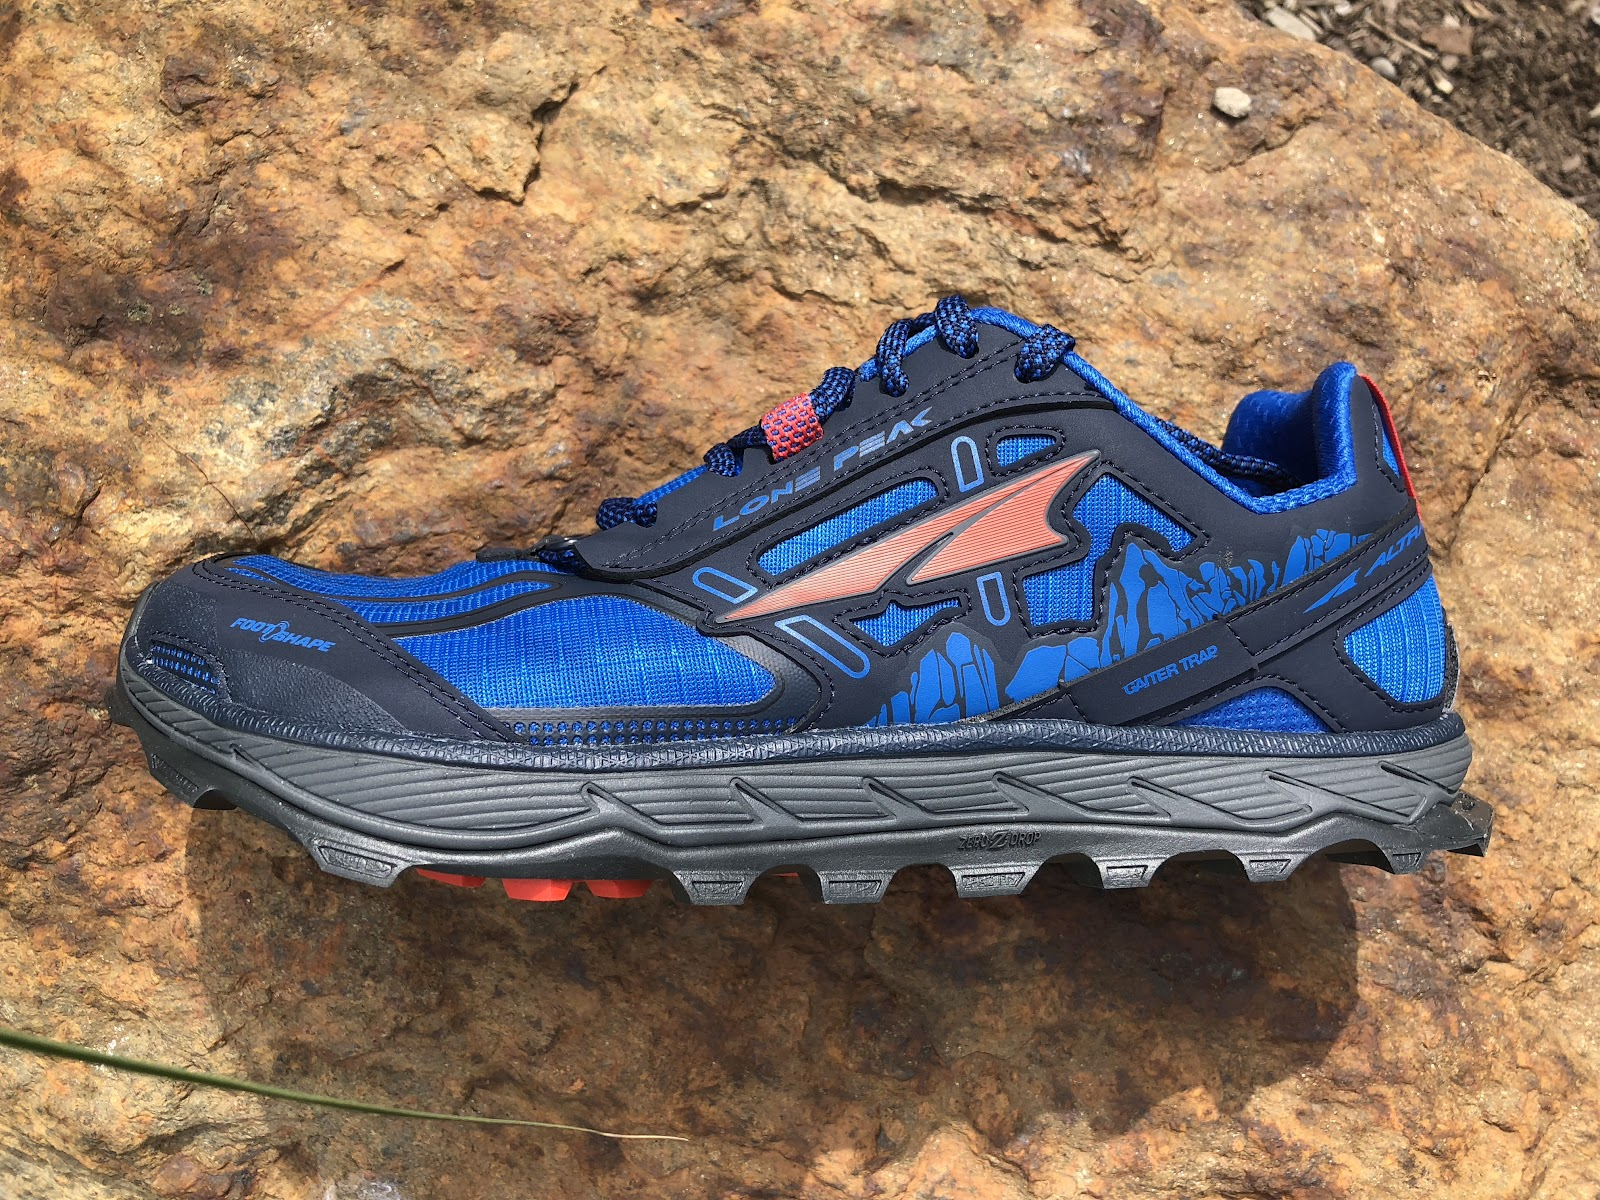 ffe74d9e51073 Sam  The Lone Peak is Altra s best selling trail running shoe. It is also  the best selling trail shoe in run speciality stores